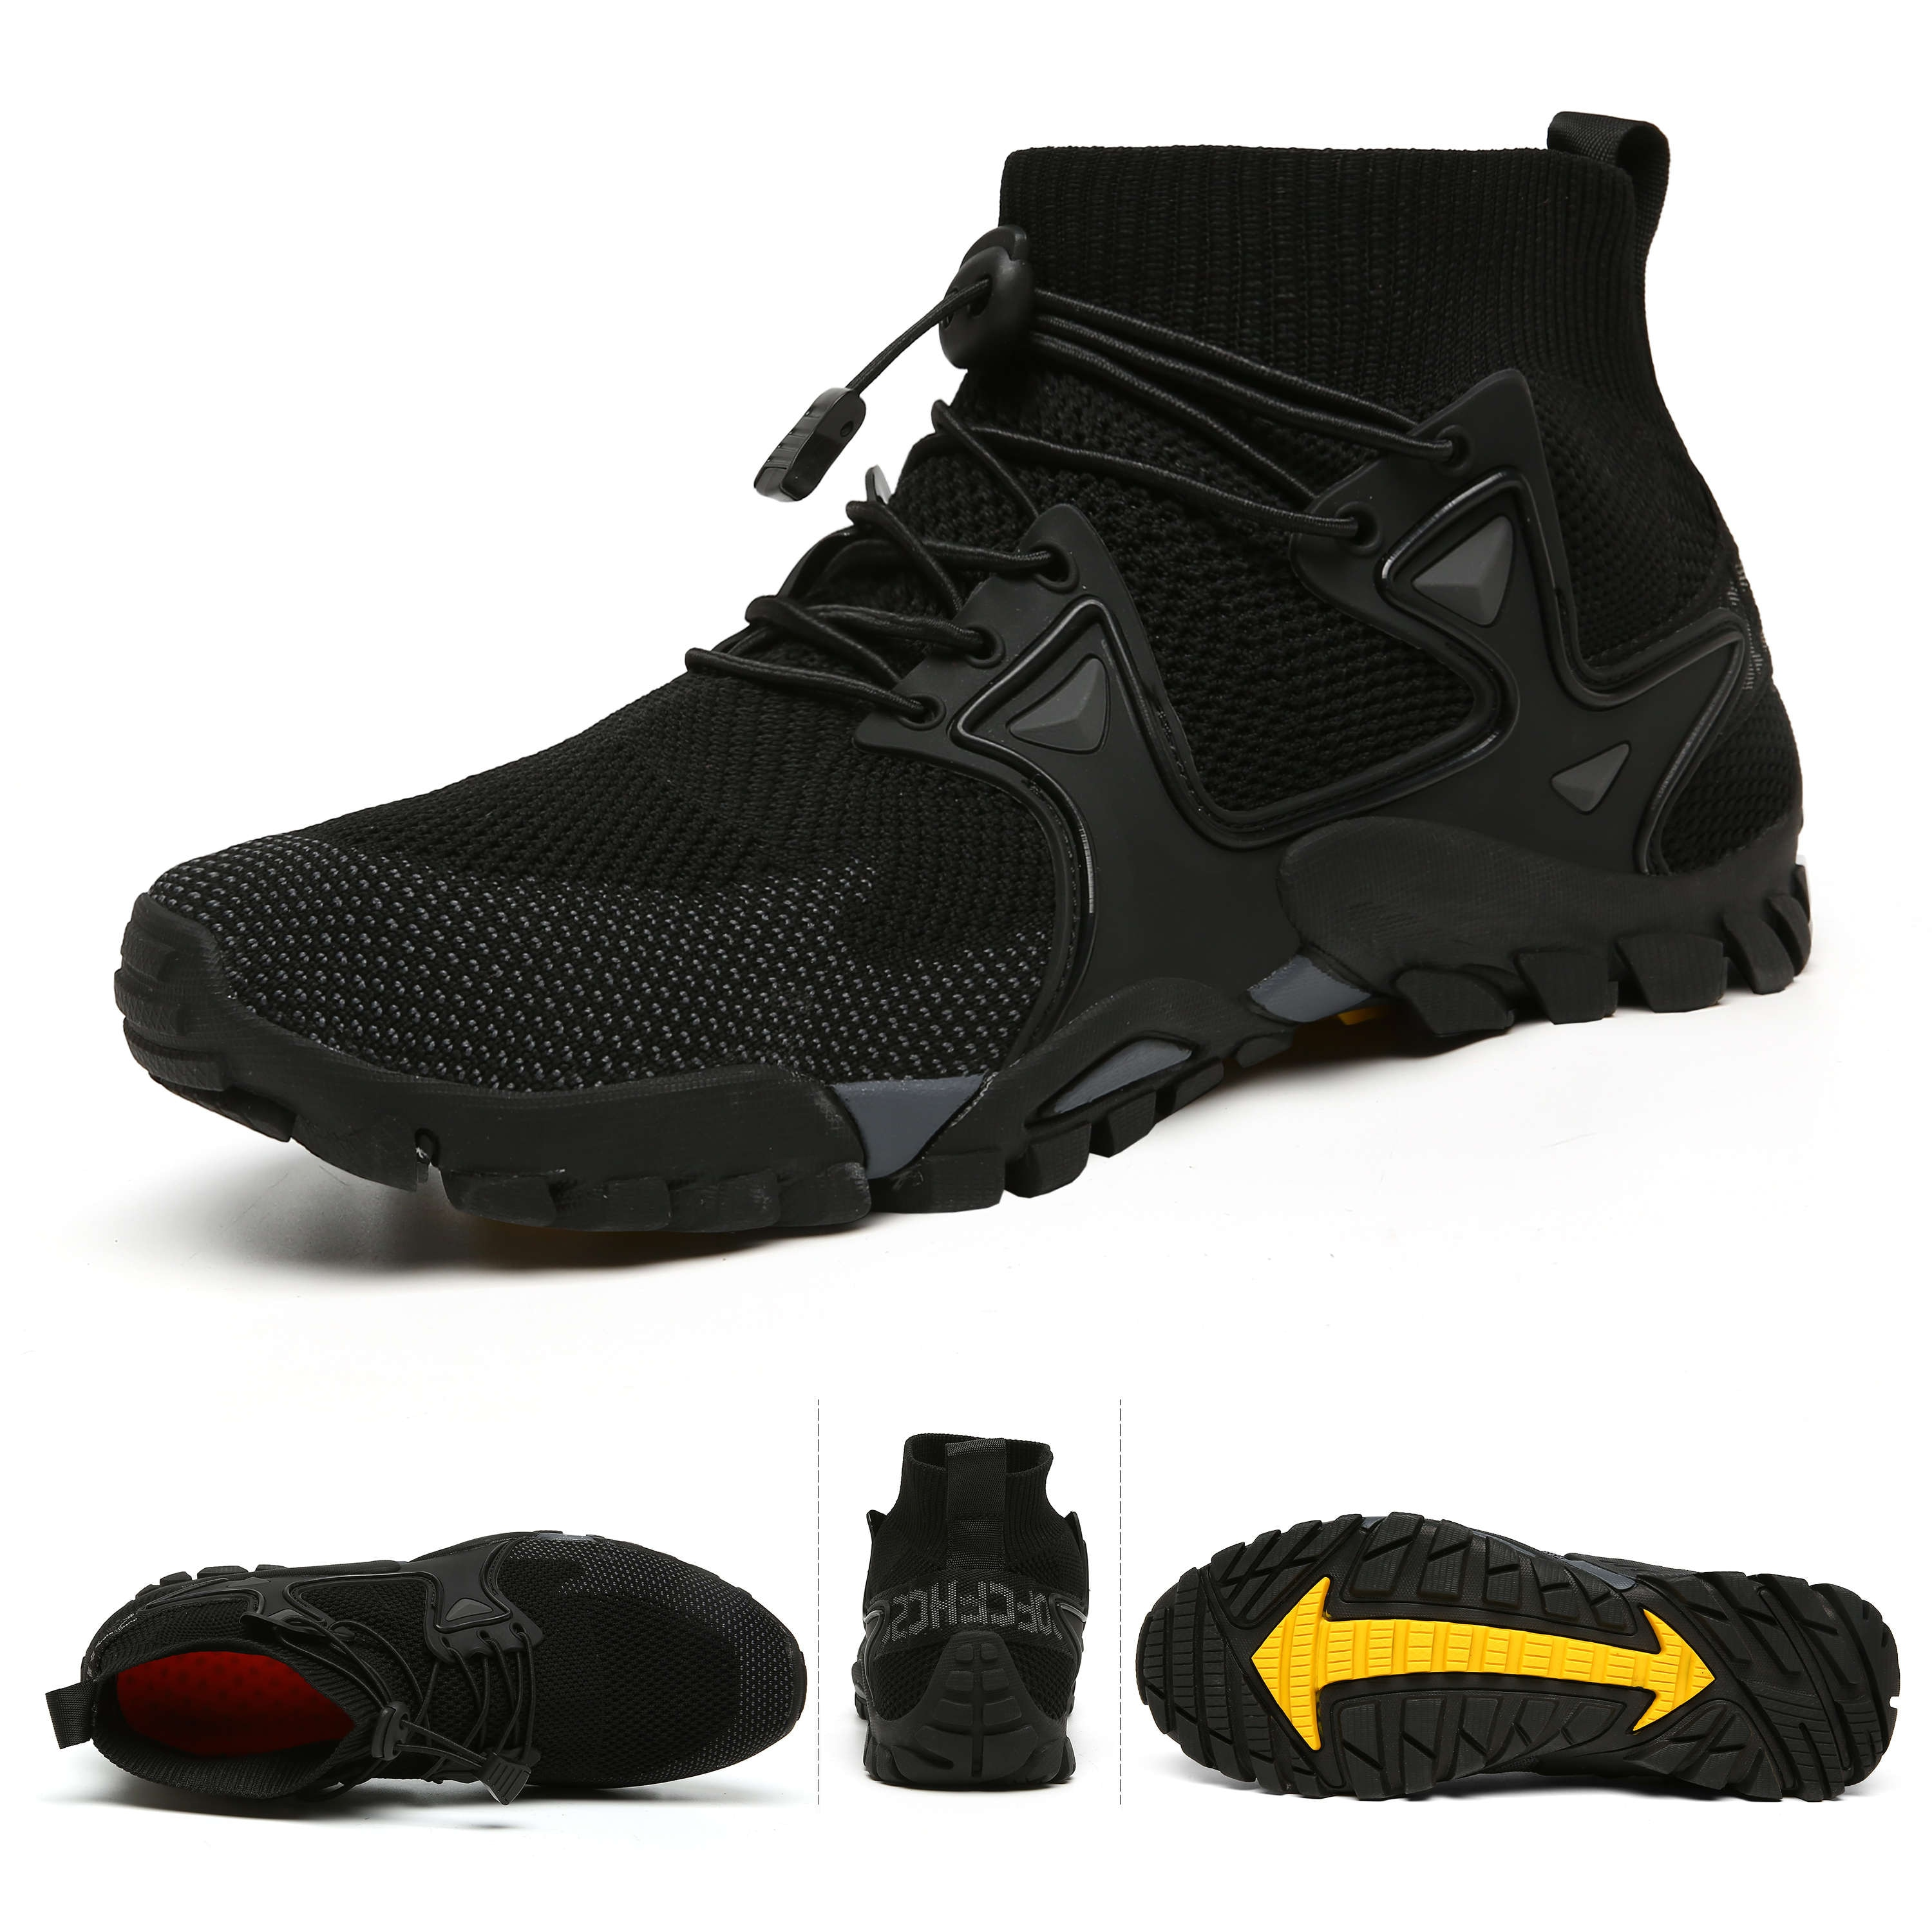 Sport Shoes Man Low Price Men's Running Shoes Hiking Sports Shoes For Male No Laces Summer Men's Sneakers Novelties Tennis Skor